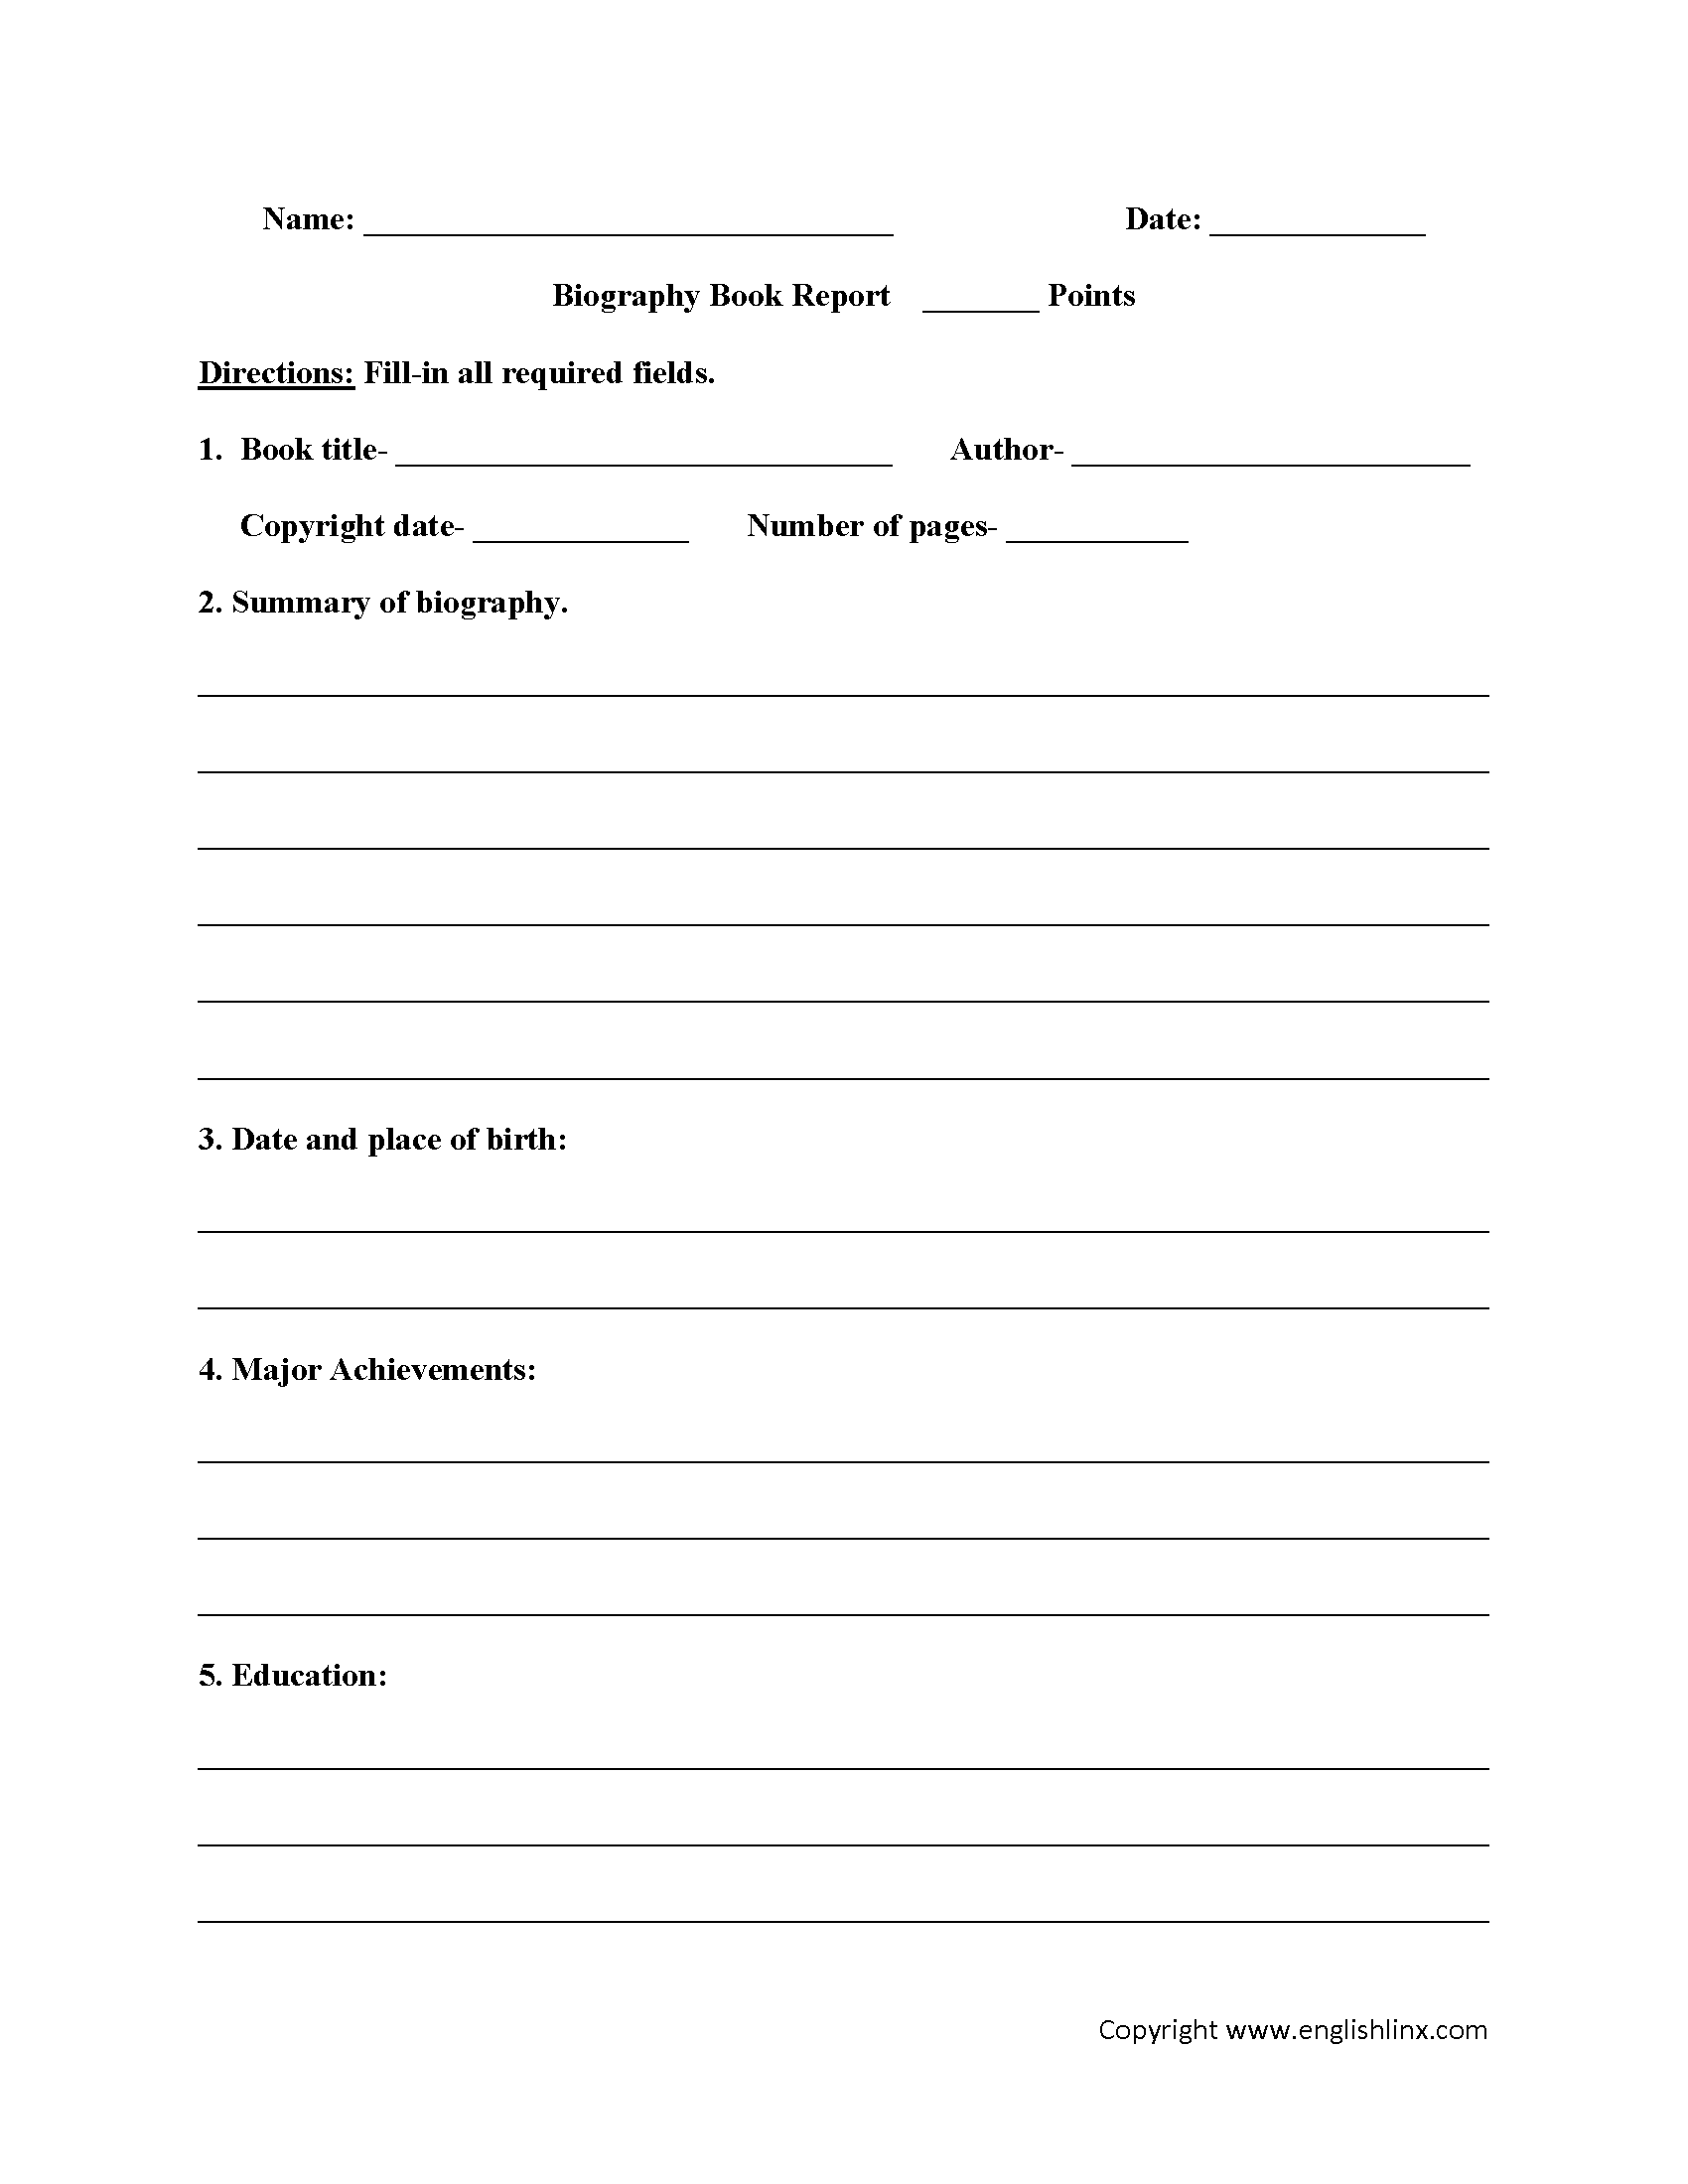 biography book report worksheets homework pinterest biography books worksheets and books. Black Bedroom Furniture Sets. Home Design Ideas